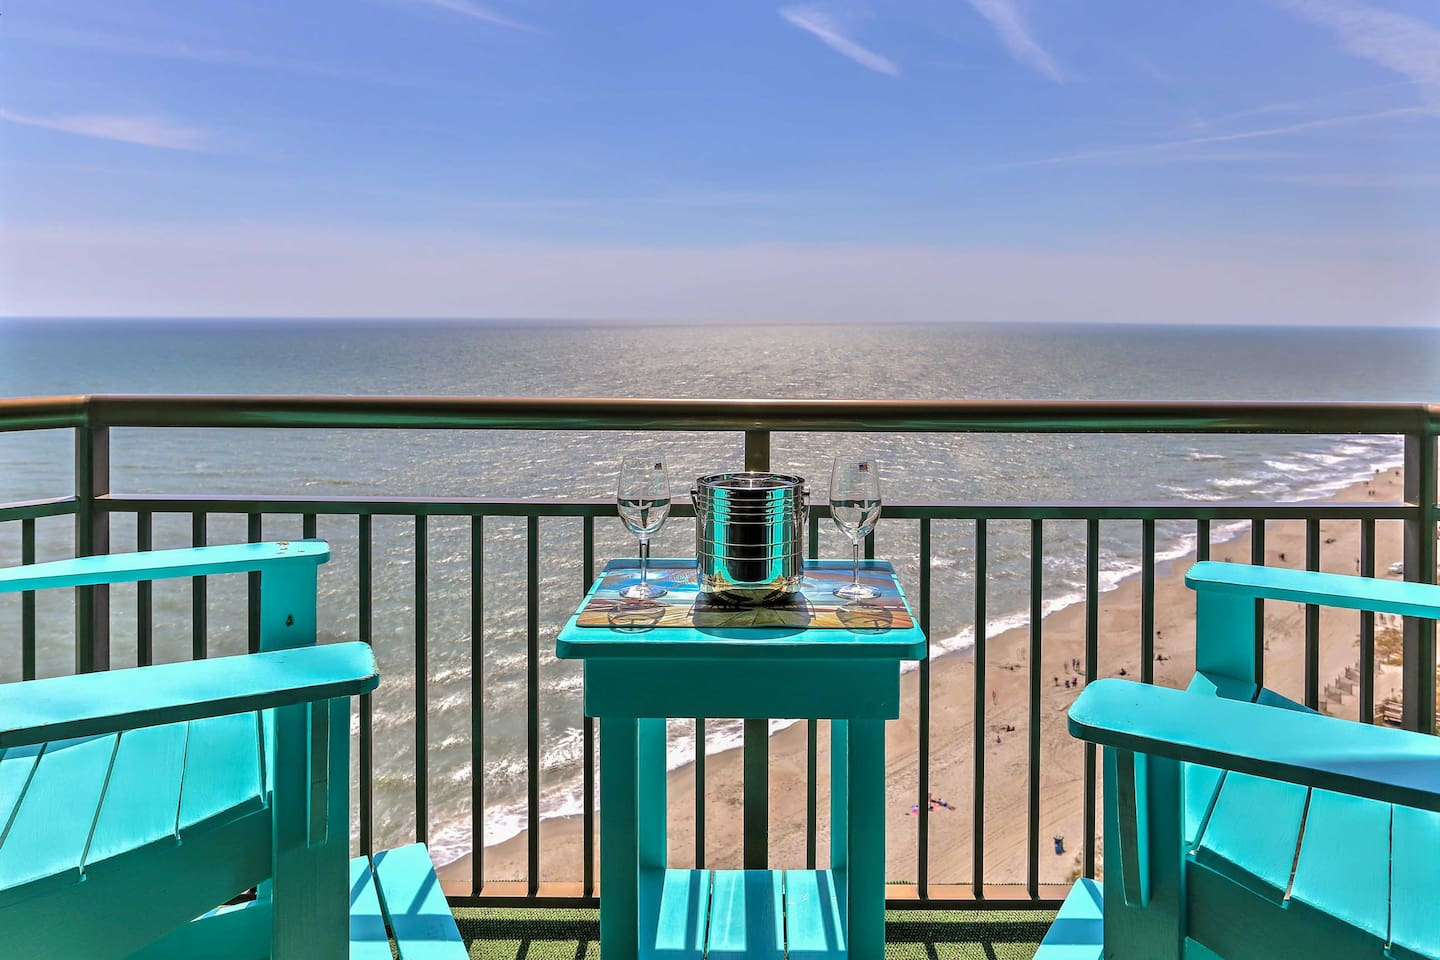 Book the beachfront getaway of your dreams at this Myrtle Beach studio condo.